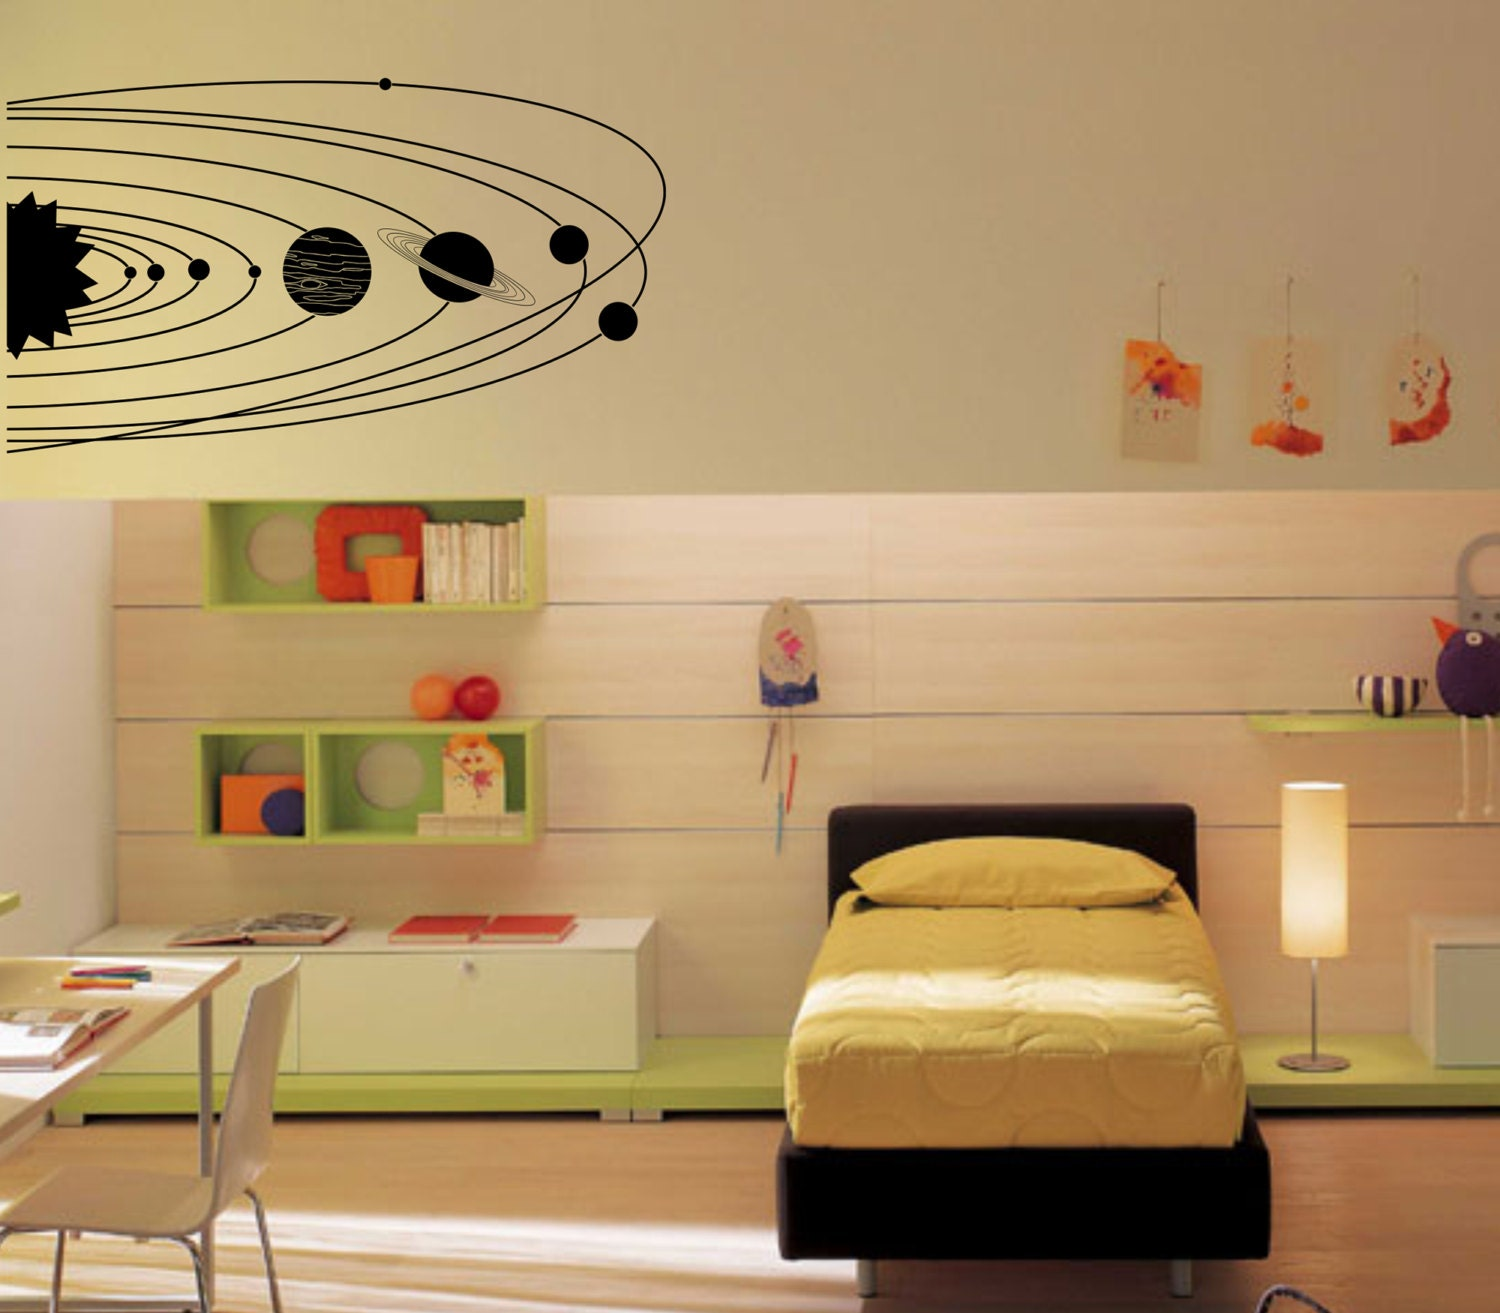 Images of Solar System Wall Decals Large - #SpaceHero